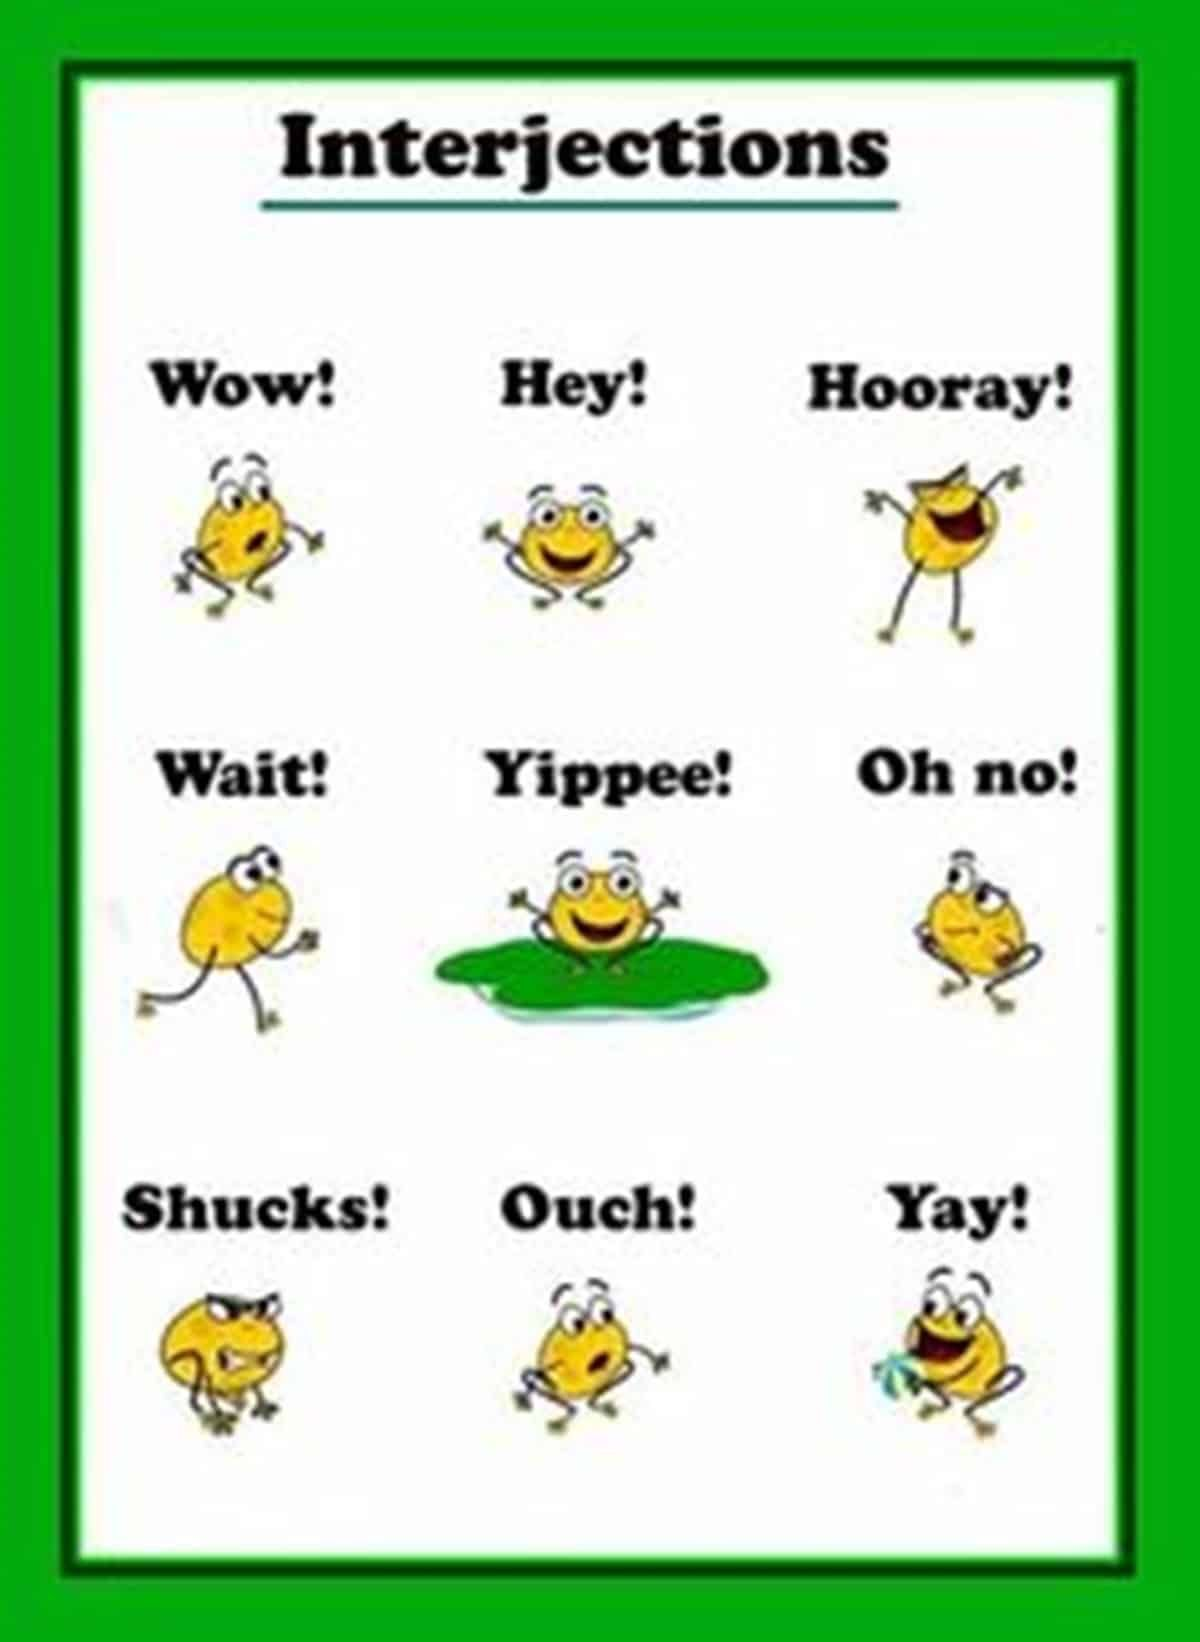 What Are Interjections And How Do You Use Them